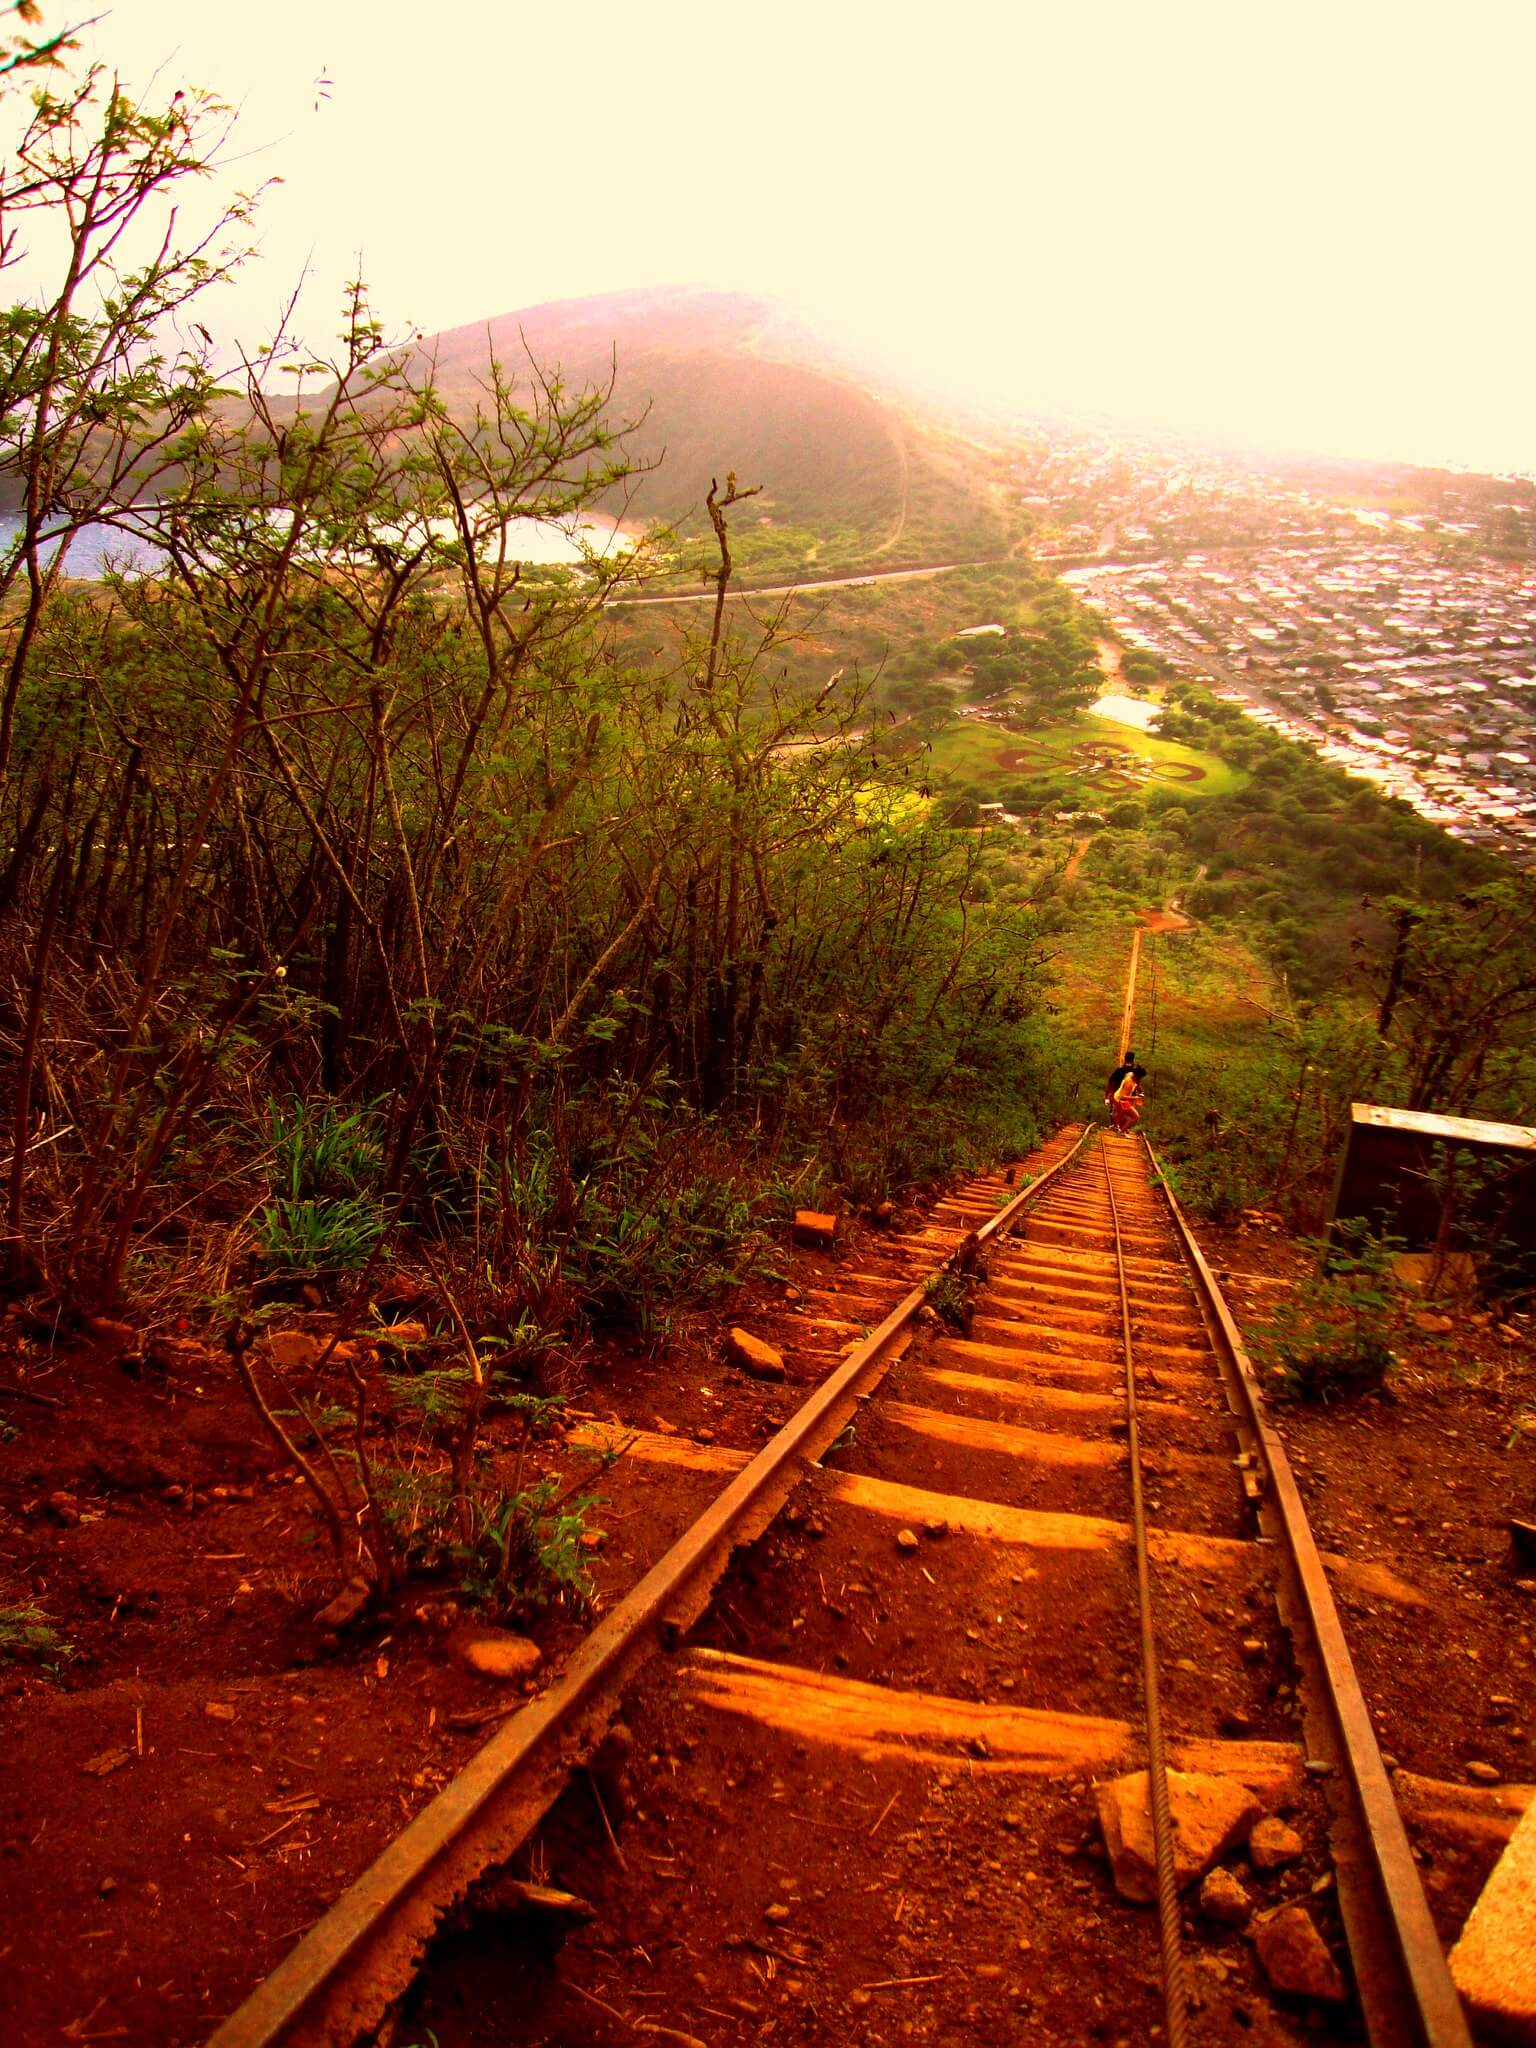 burning calories doing the Koko Head trail